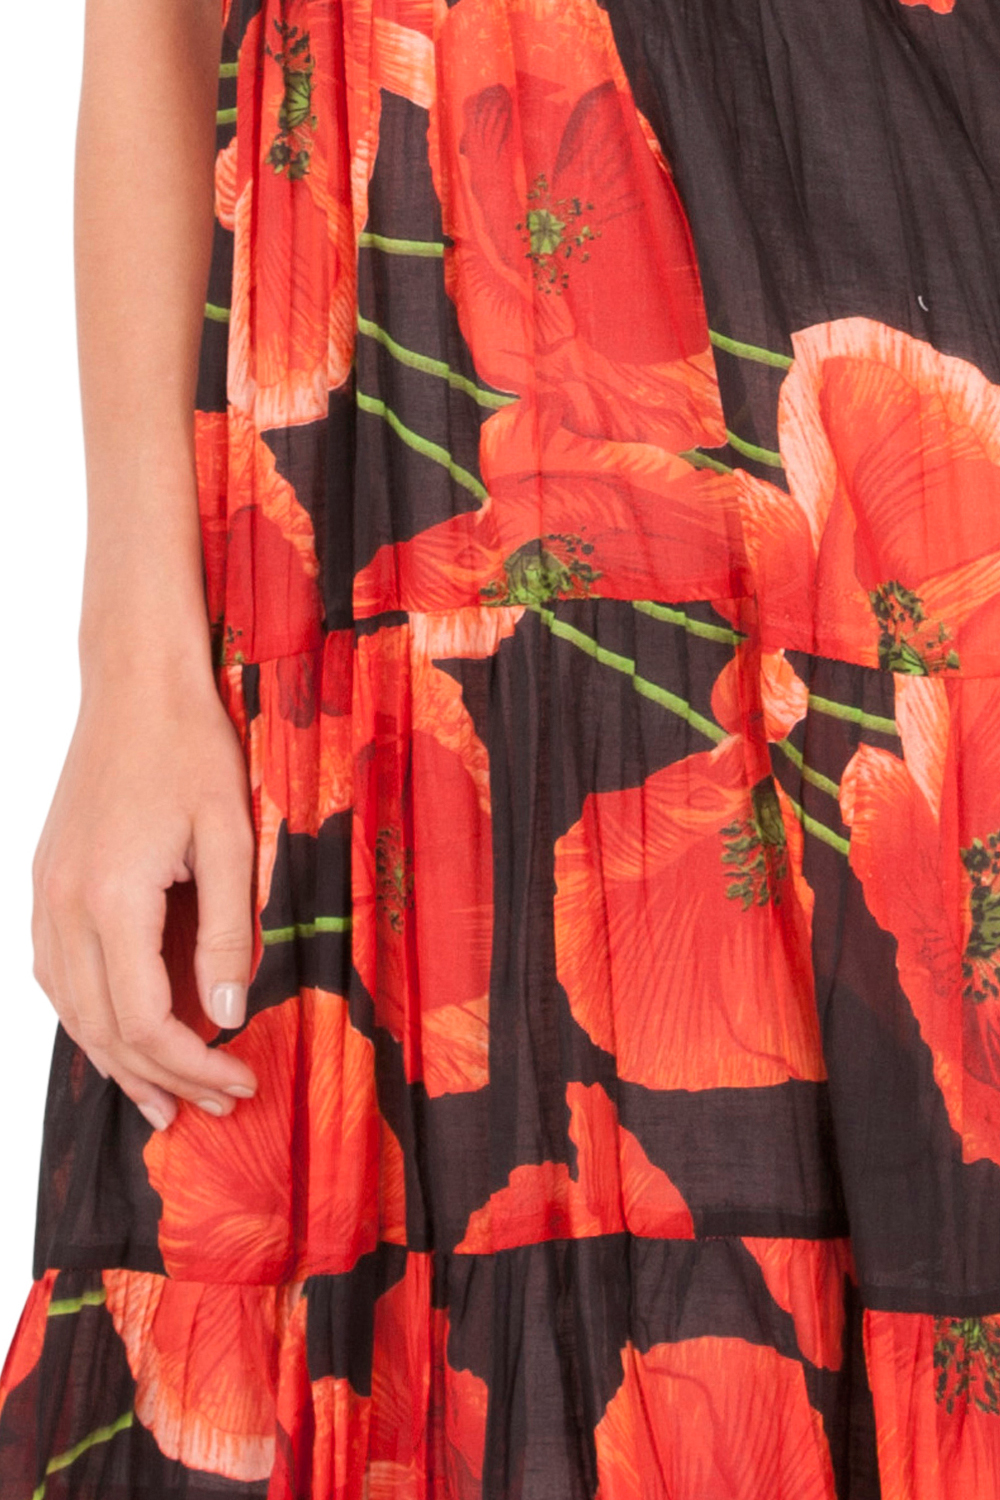 Pistachio-Womens-Crossover-Poppy-Knee-Length-Cotton-Midi-Summer-Evening-Dress thumbnail 6